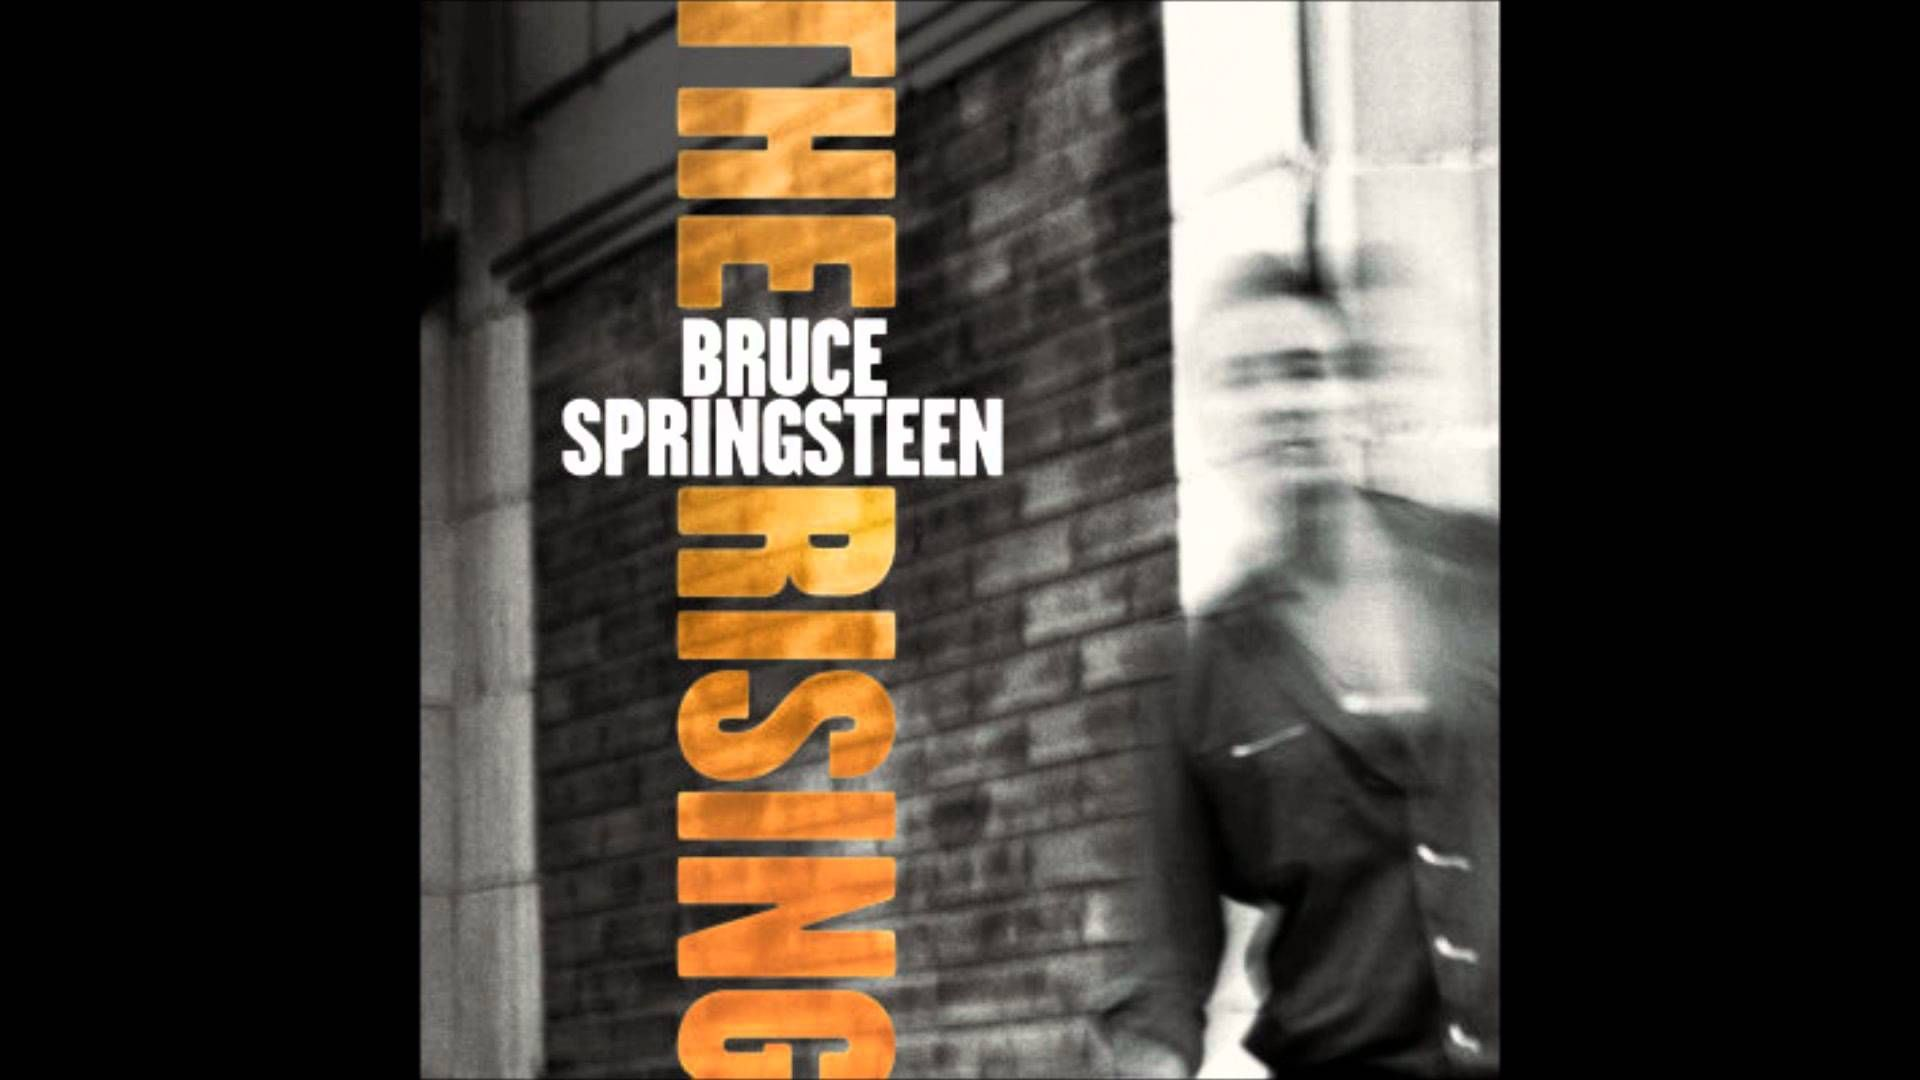 Bruce Springsteen The Rising Bruce Springsteen Albums Bruce Springsteen The Rising Bruce Springsteen